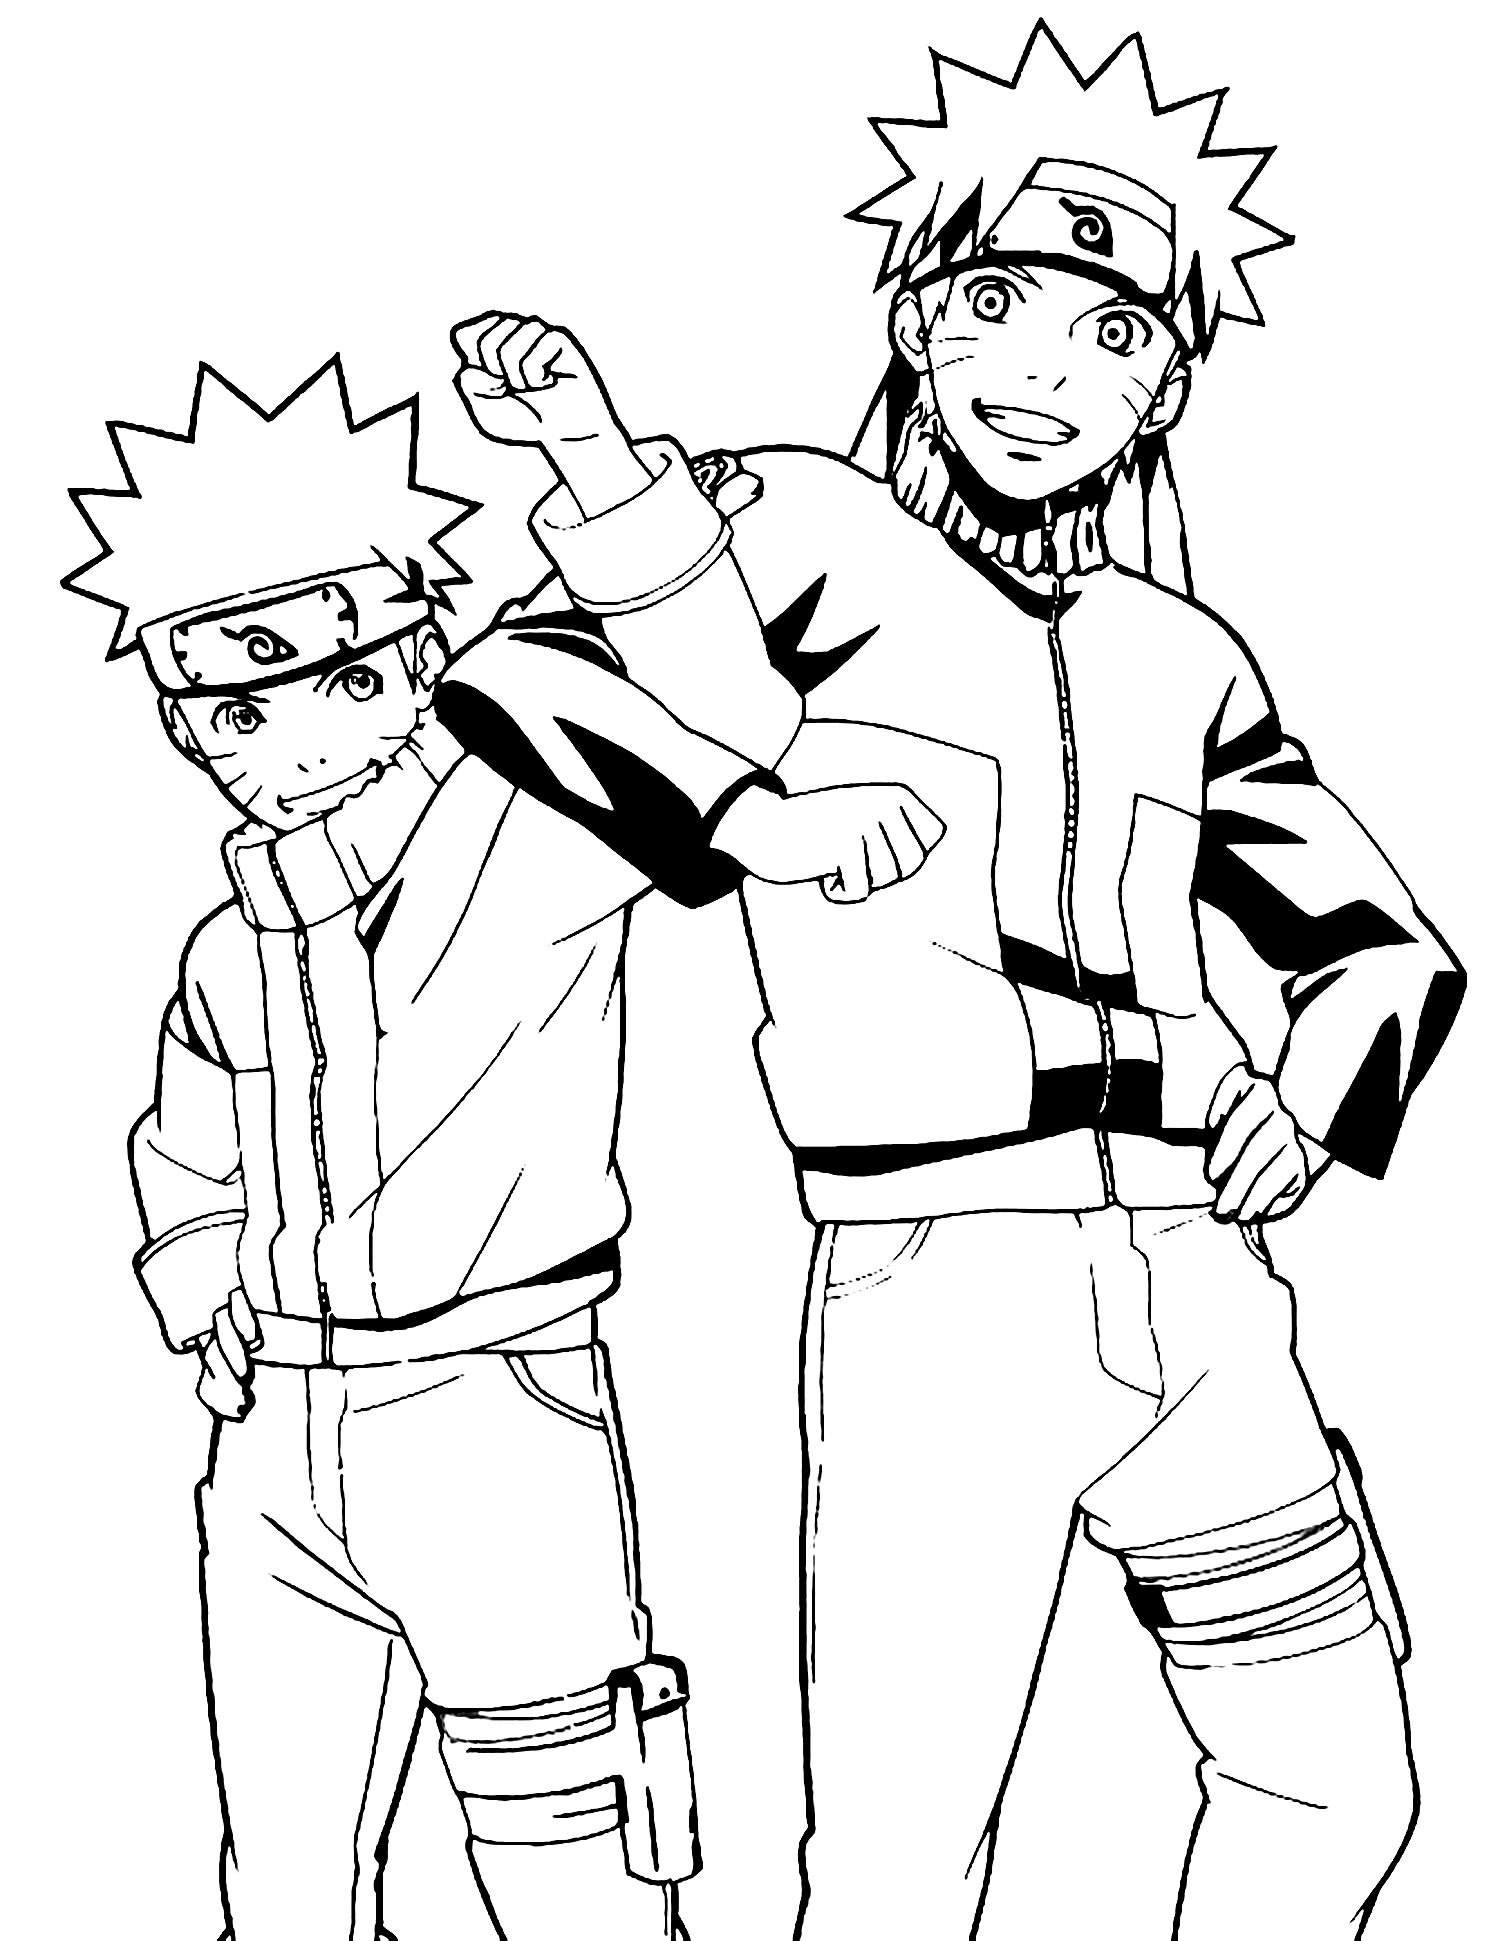 naruto coloring page naruto shippuden coloring pages to download and print for free coloring naruto page 1 1